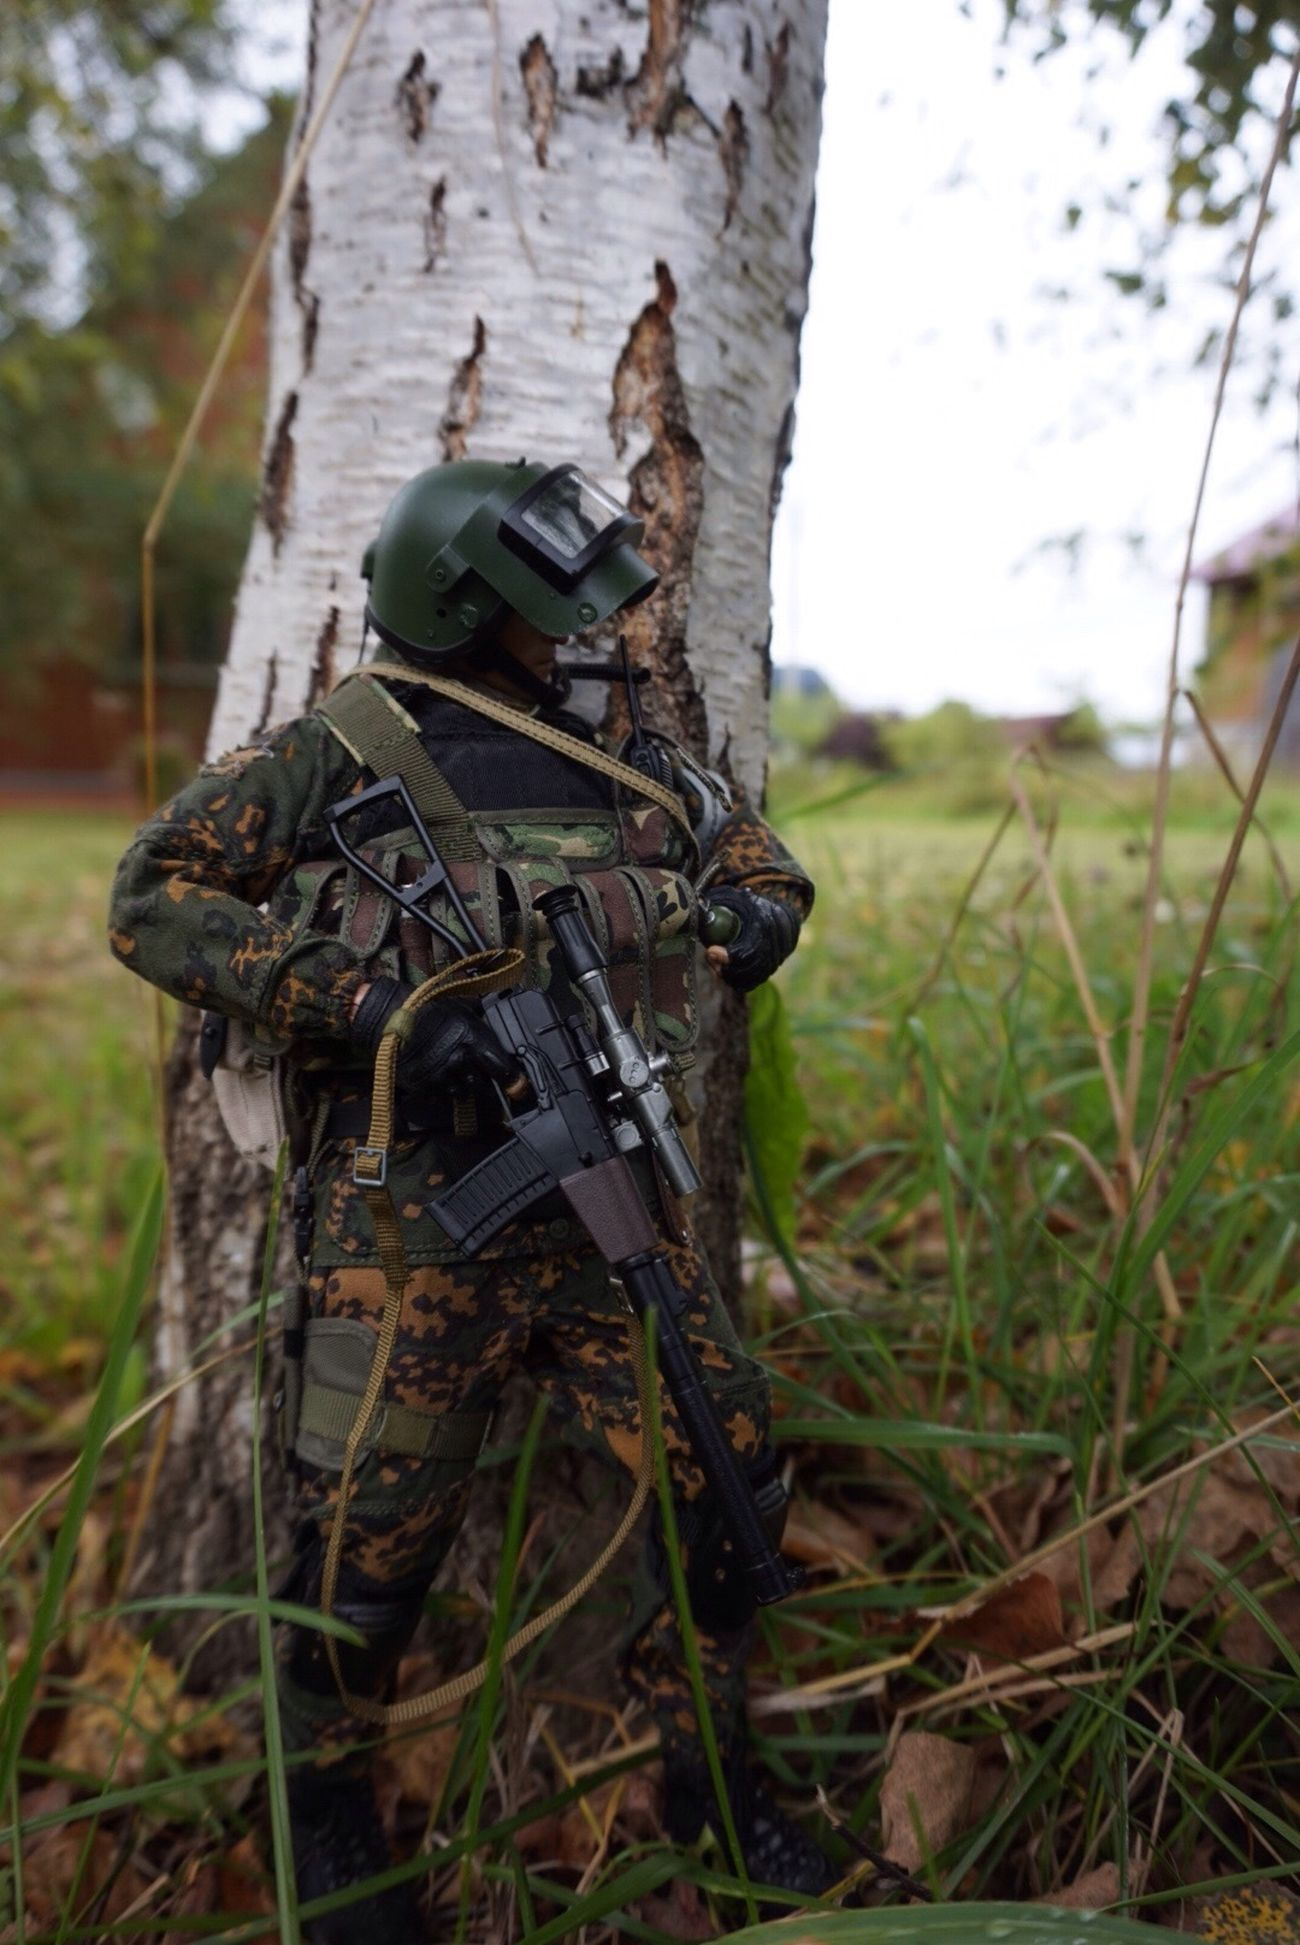 Damtoys Spetsnaz Russiansolder Soldier Funko Funkopop Figure Collection Collector Alpha SonyA5000 Fotography Focus On Foreground Tree Trunk Tree Outdoors Close-up Day No People Grass Birdhouse Nature